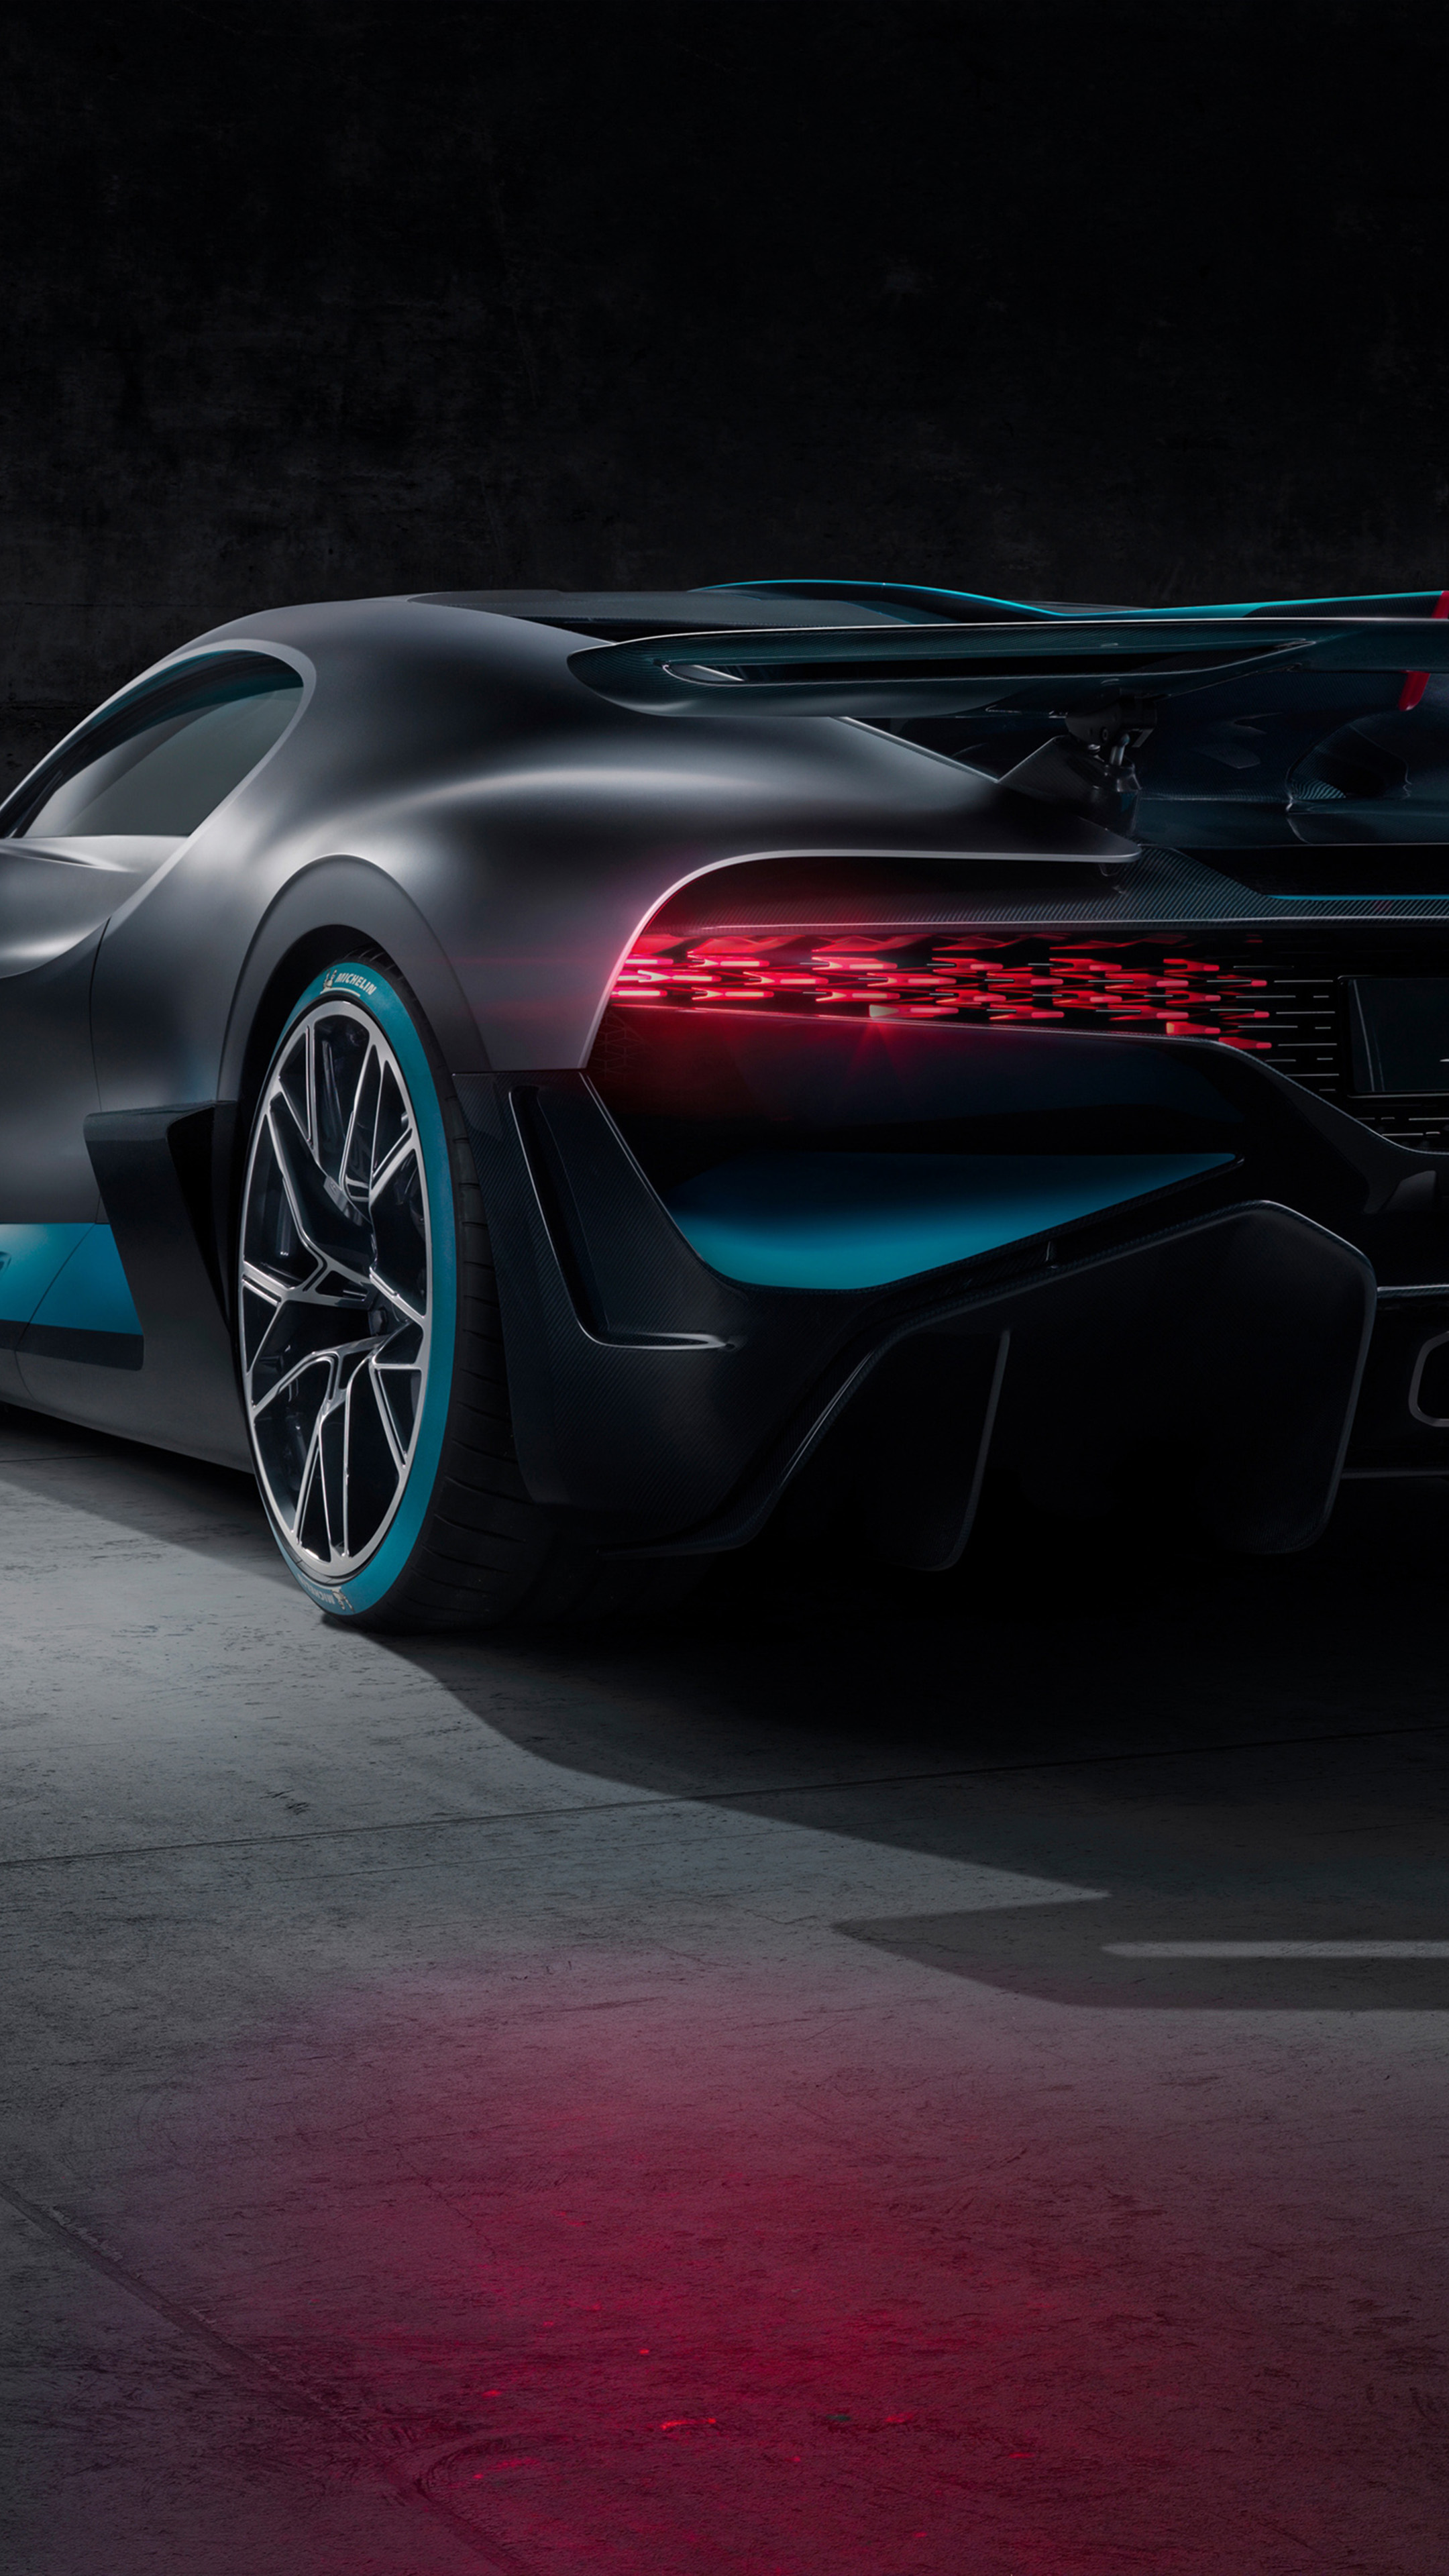 Bugatti Divo 2019 4k Ultra Hd Mobile Wallpaper